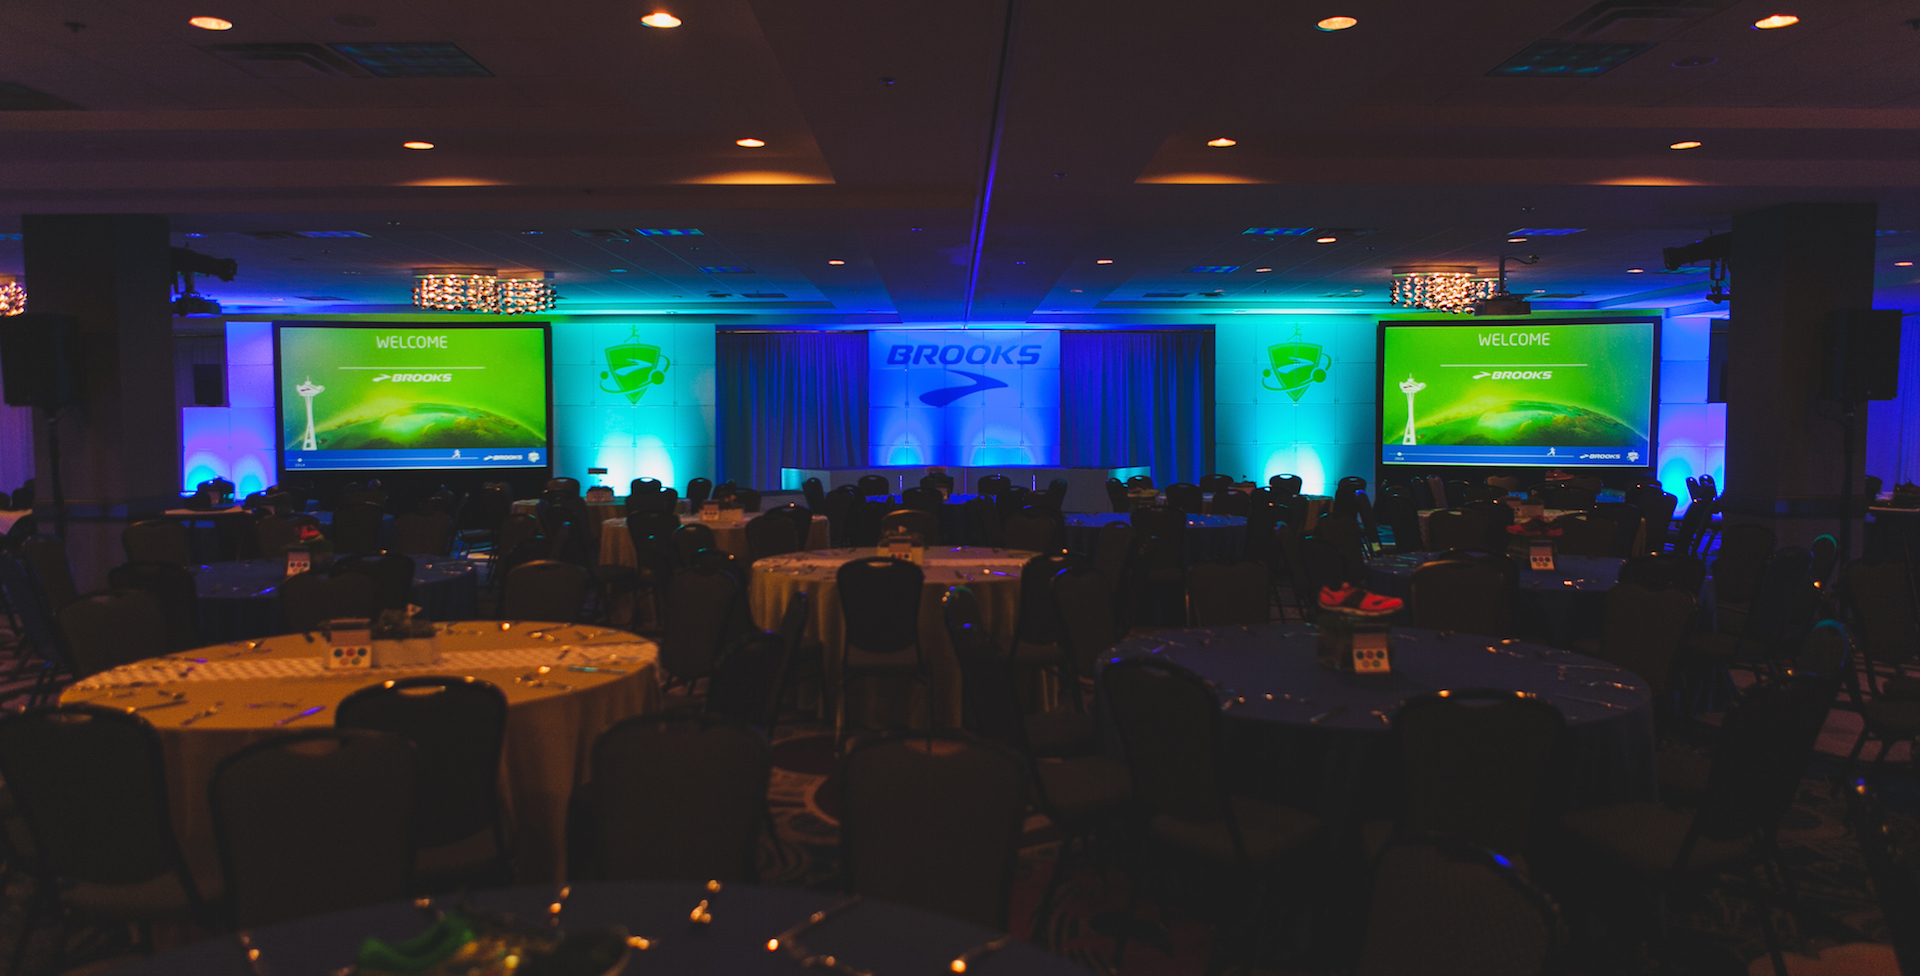 Two big screens dispalying logos are on either side of a stage for a corporate event. There is blue and green lighting and an impressive atmosphere.